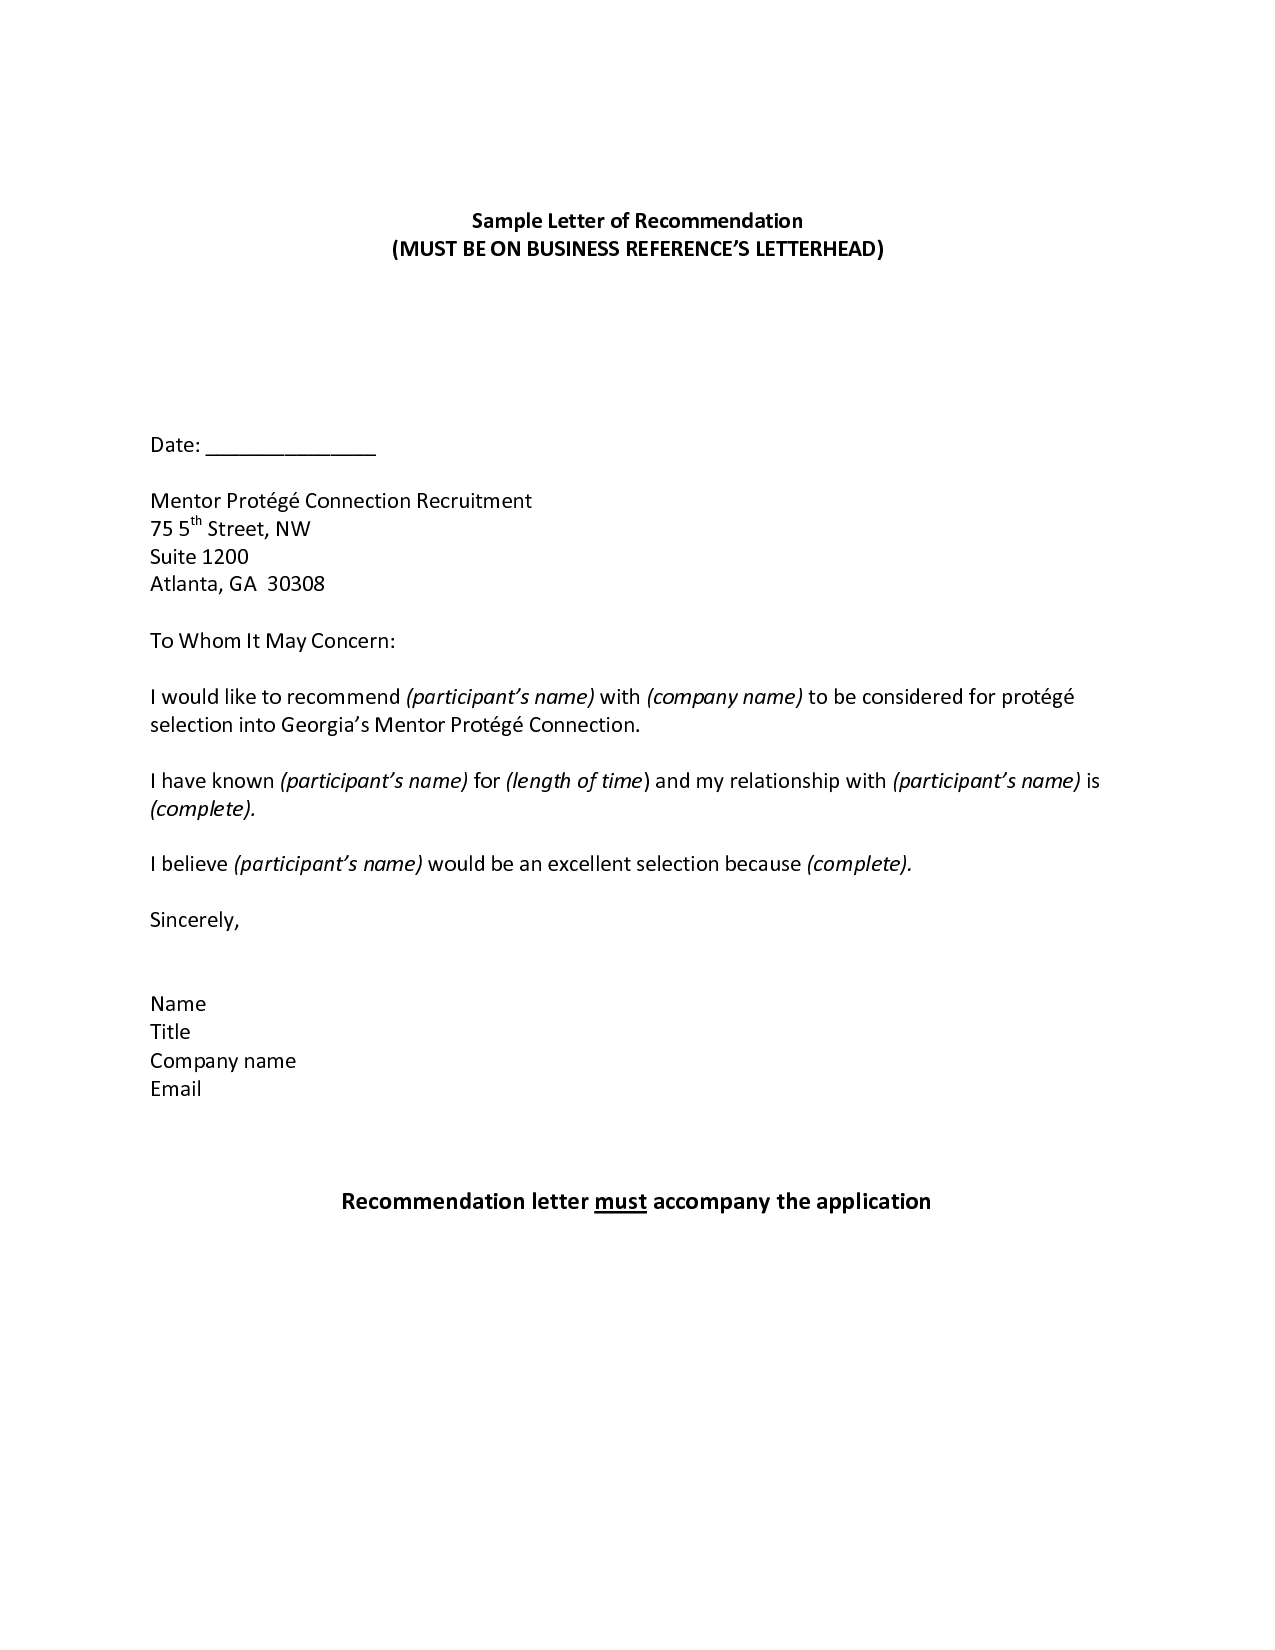 Business letter format sample template business letter format download samples of business spiritdancerdesigns Gallery